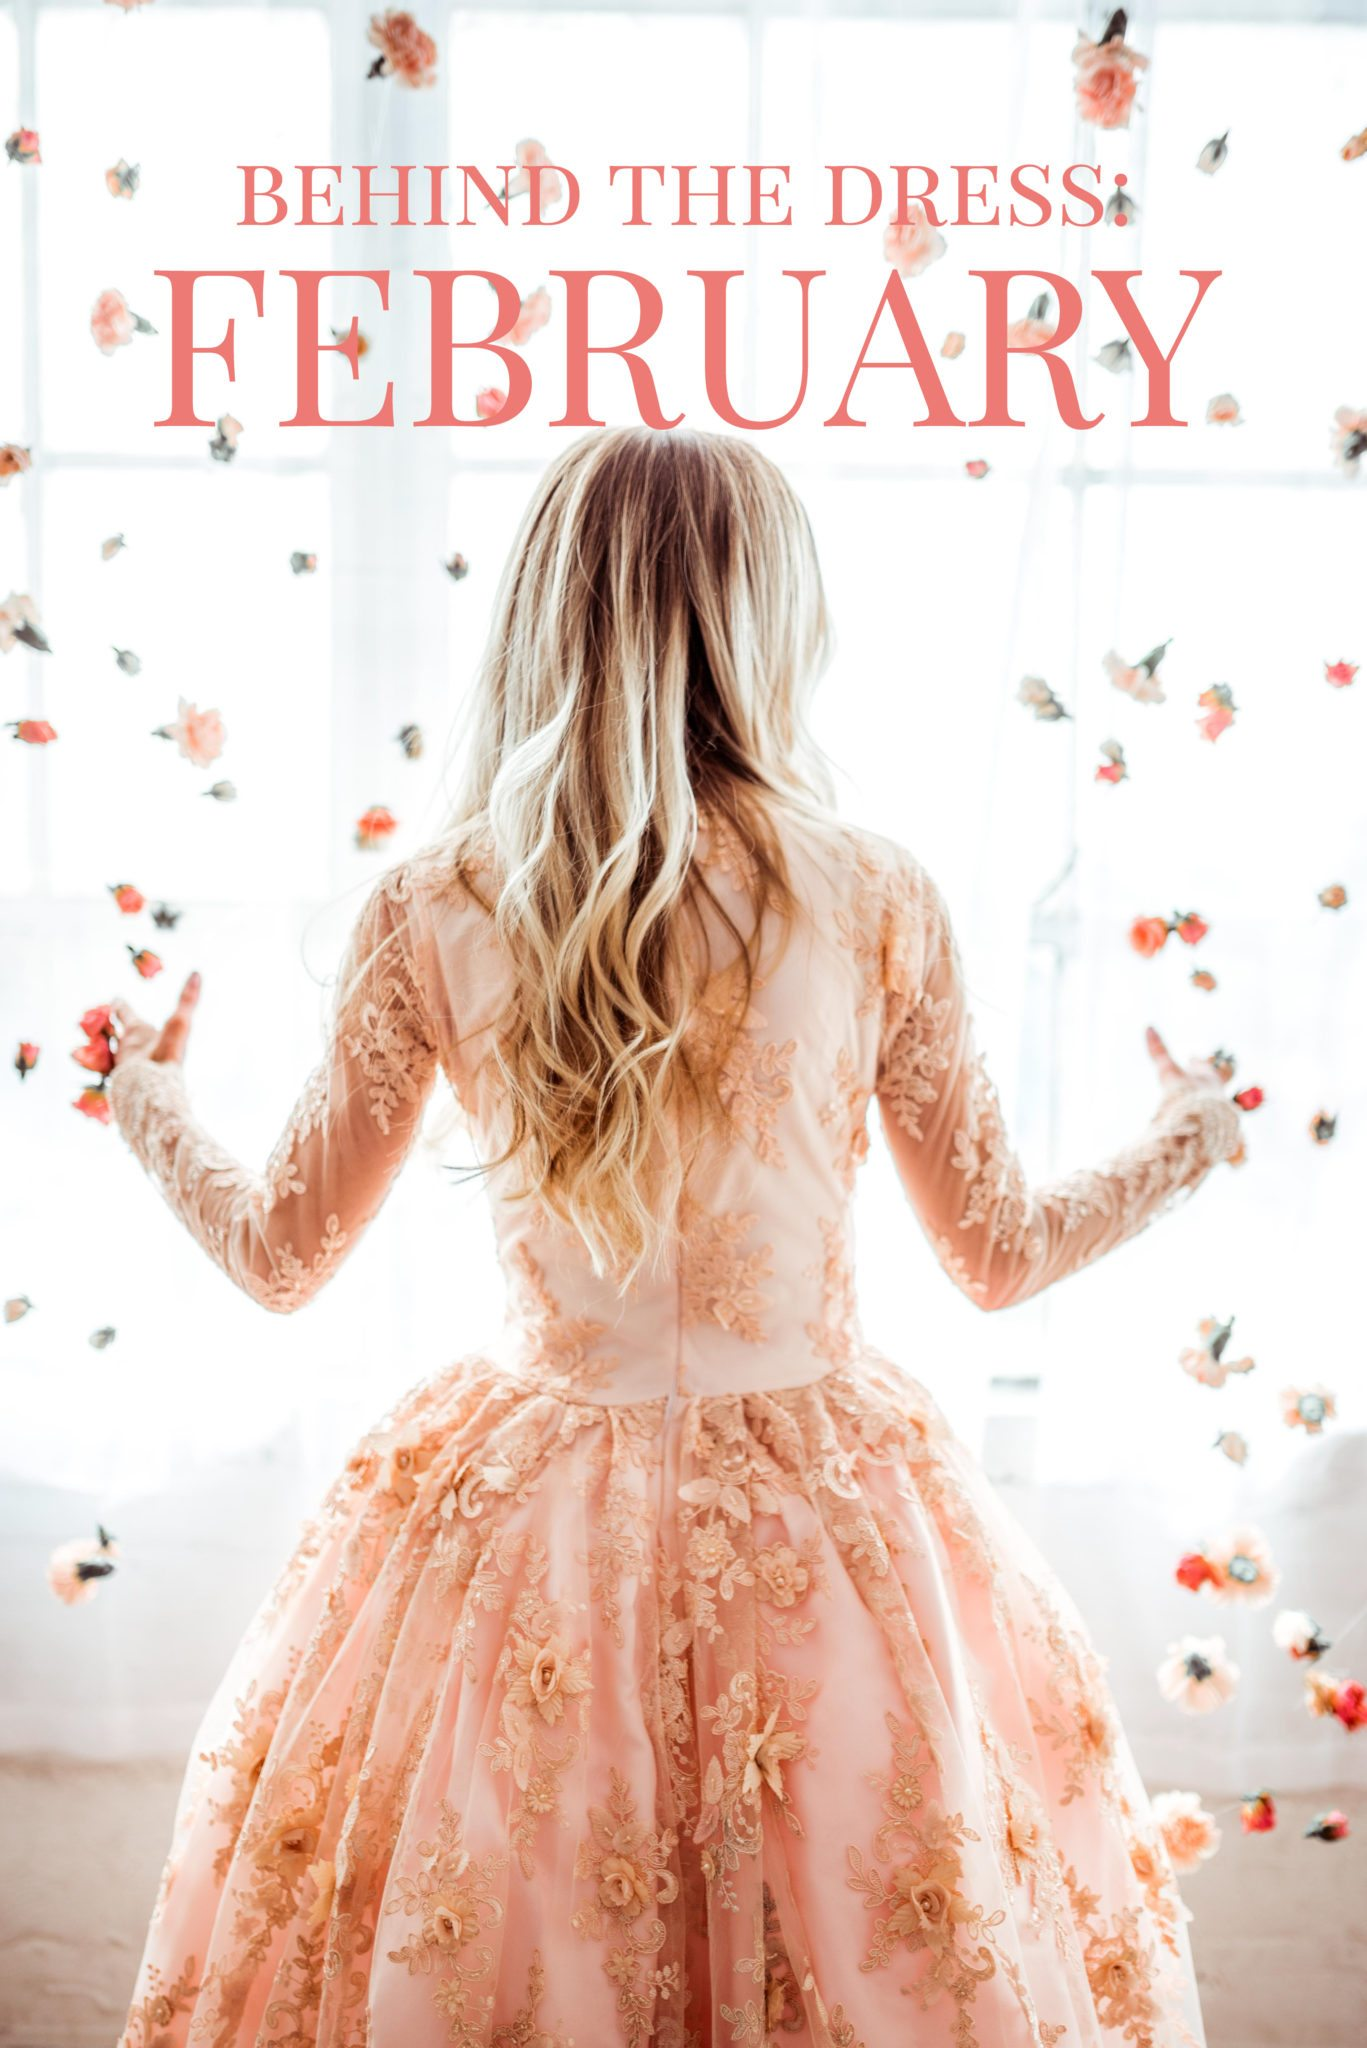 Behind the Dress: February